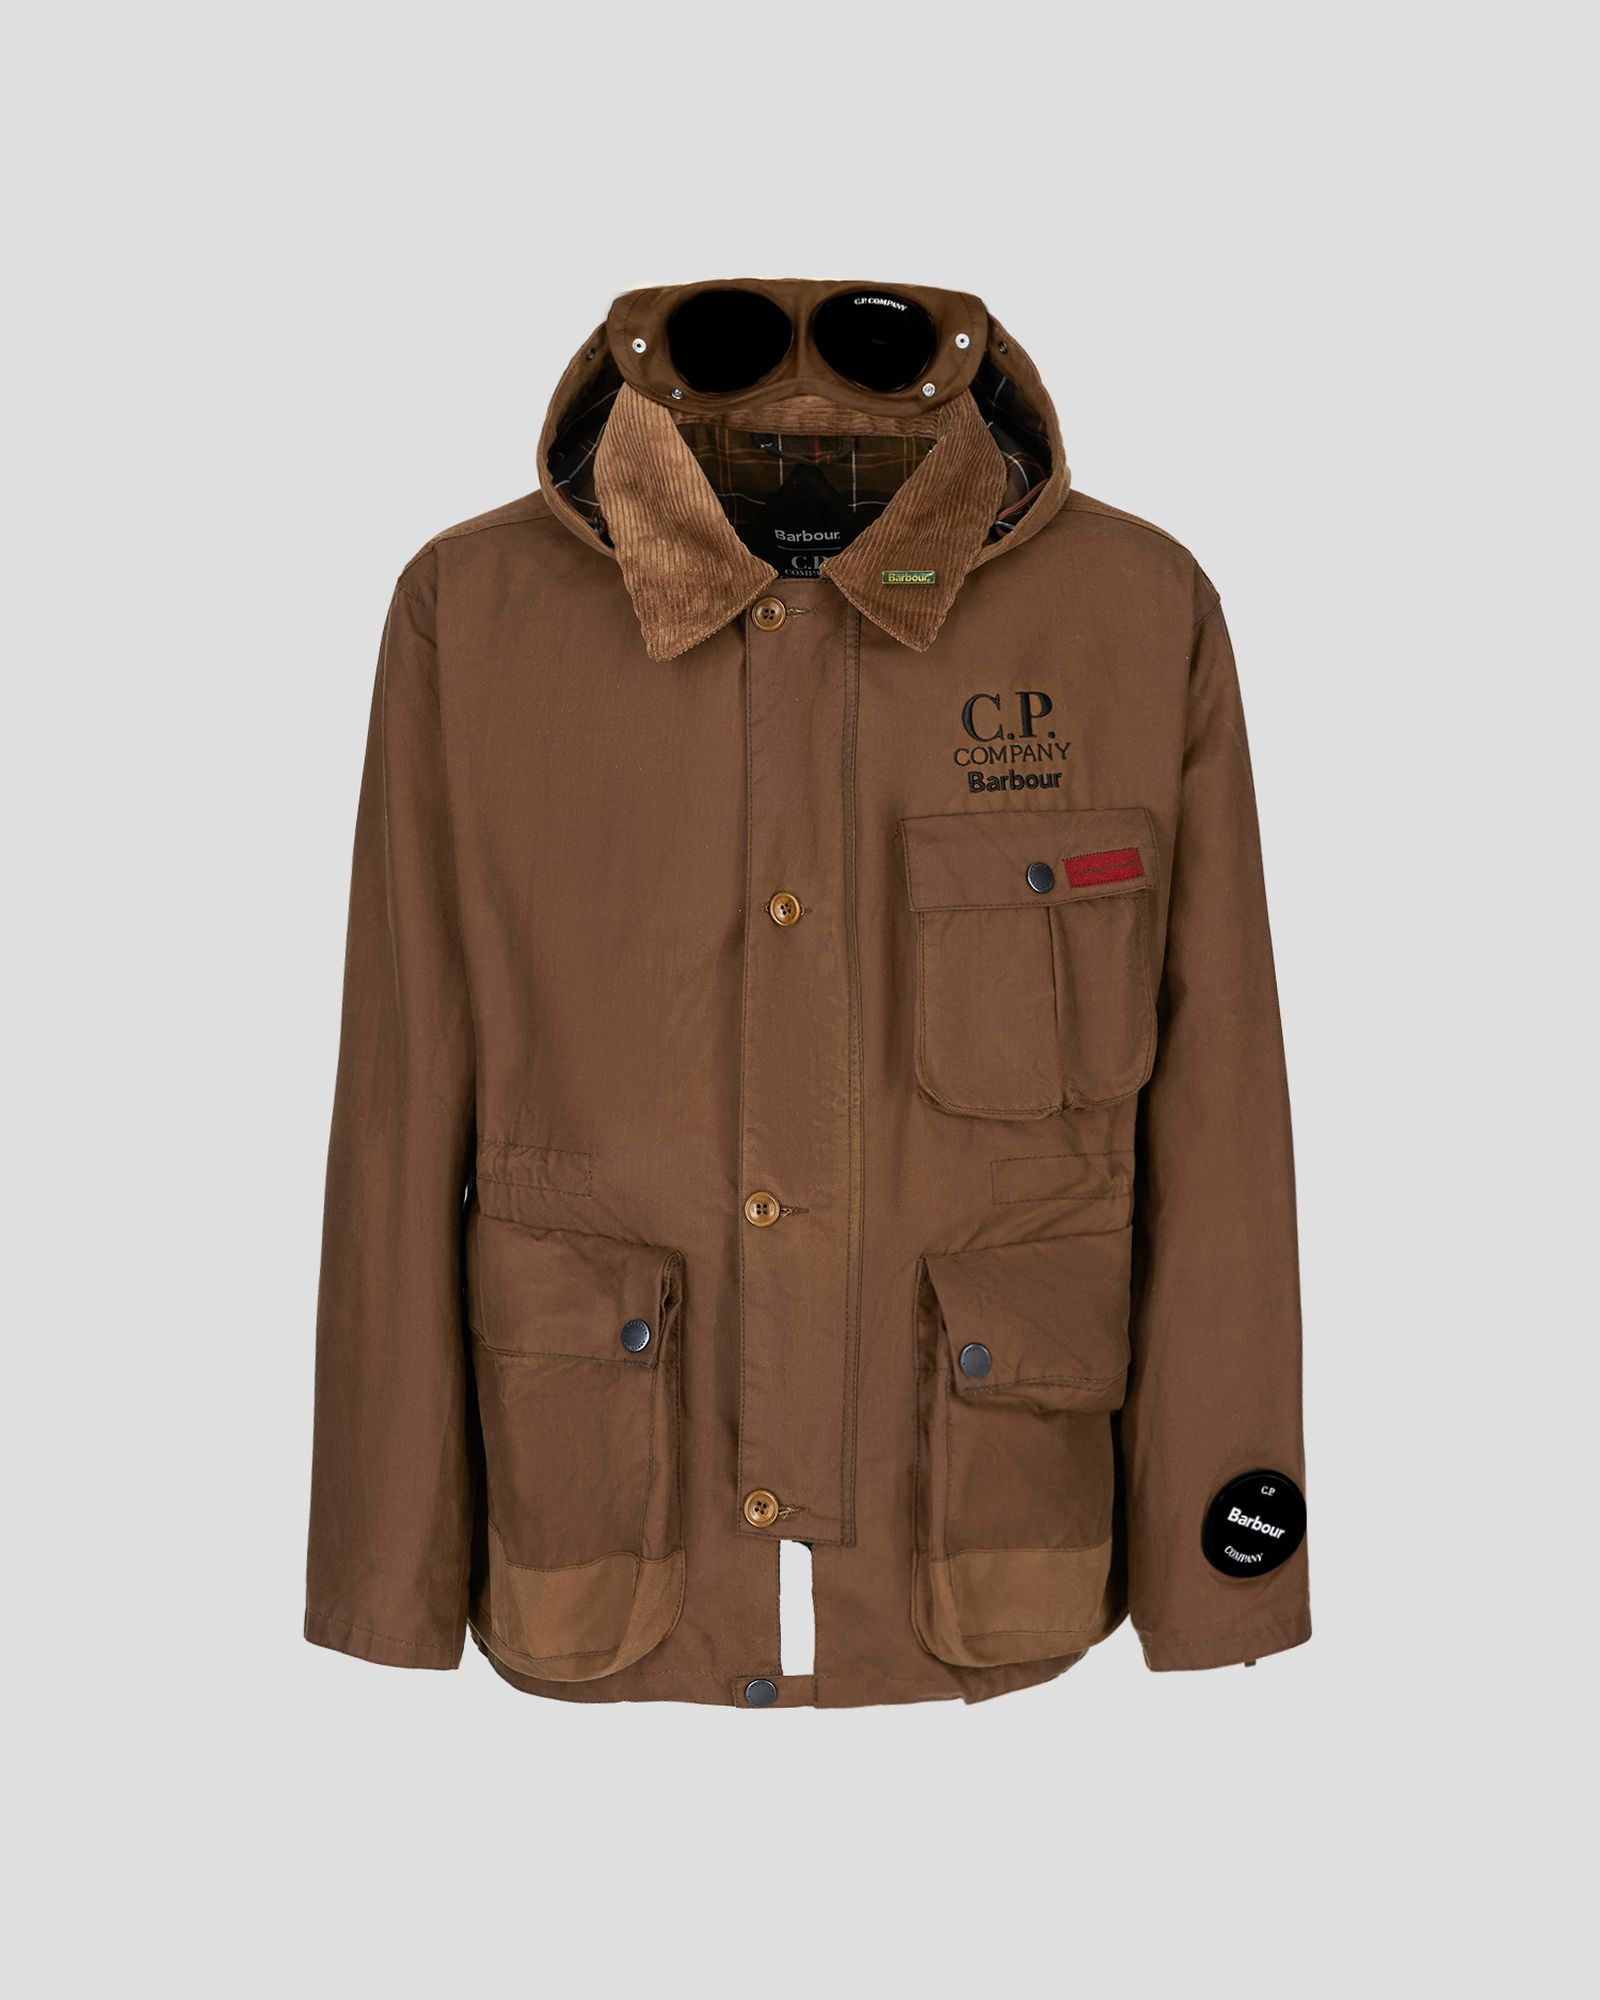 barbour-c-p-company-collection-release-information-13